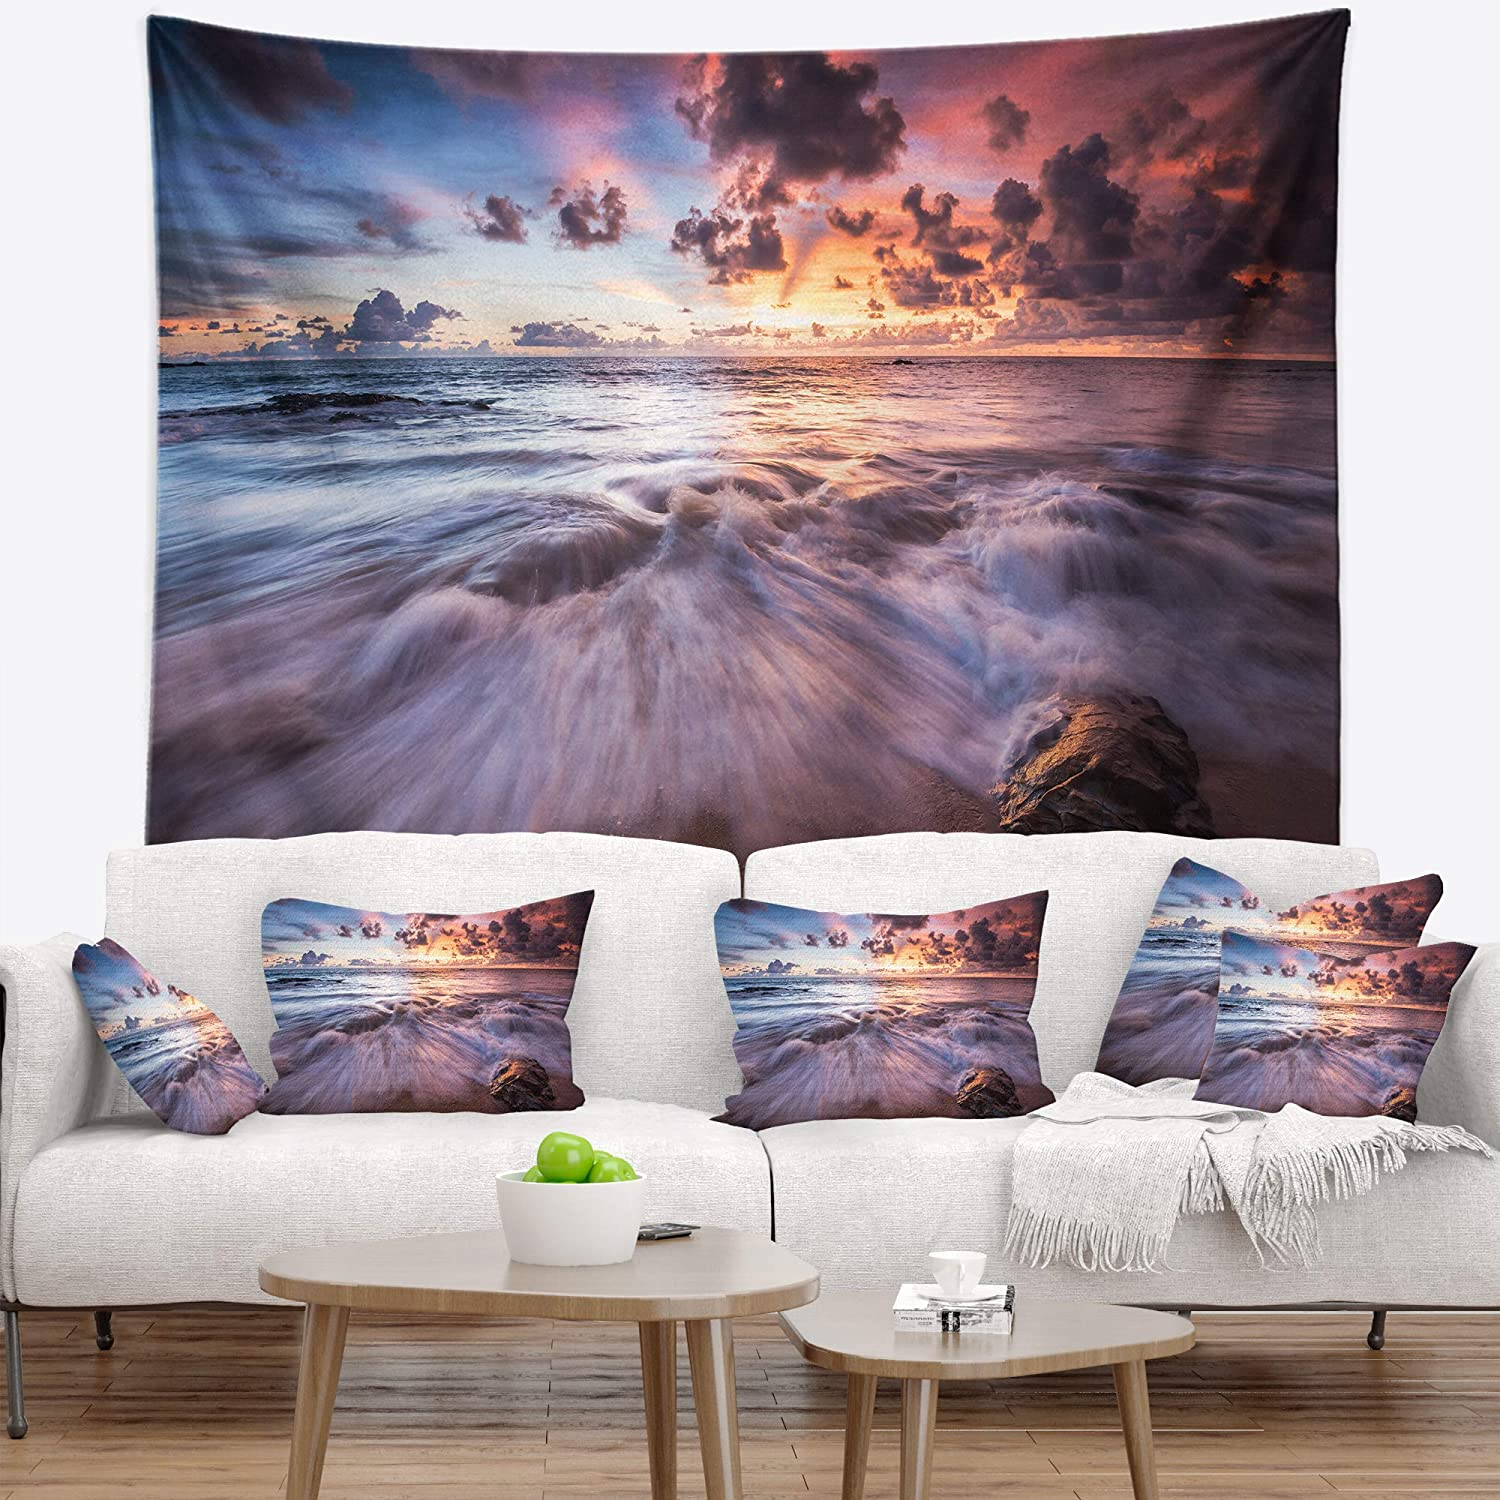 Designart TAP13057-80-68 'Beautiful Sea Waves at Sunset' Beach Photo Blanket Décor Art for Home and Office Wall Tapestry, X-Large: 80 in. x 68 in